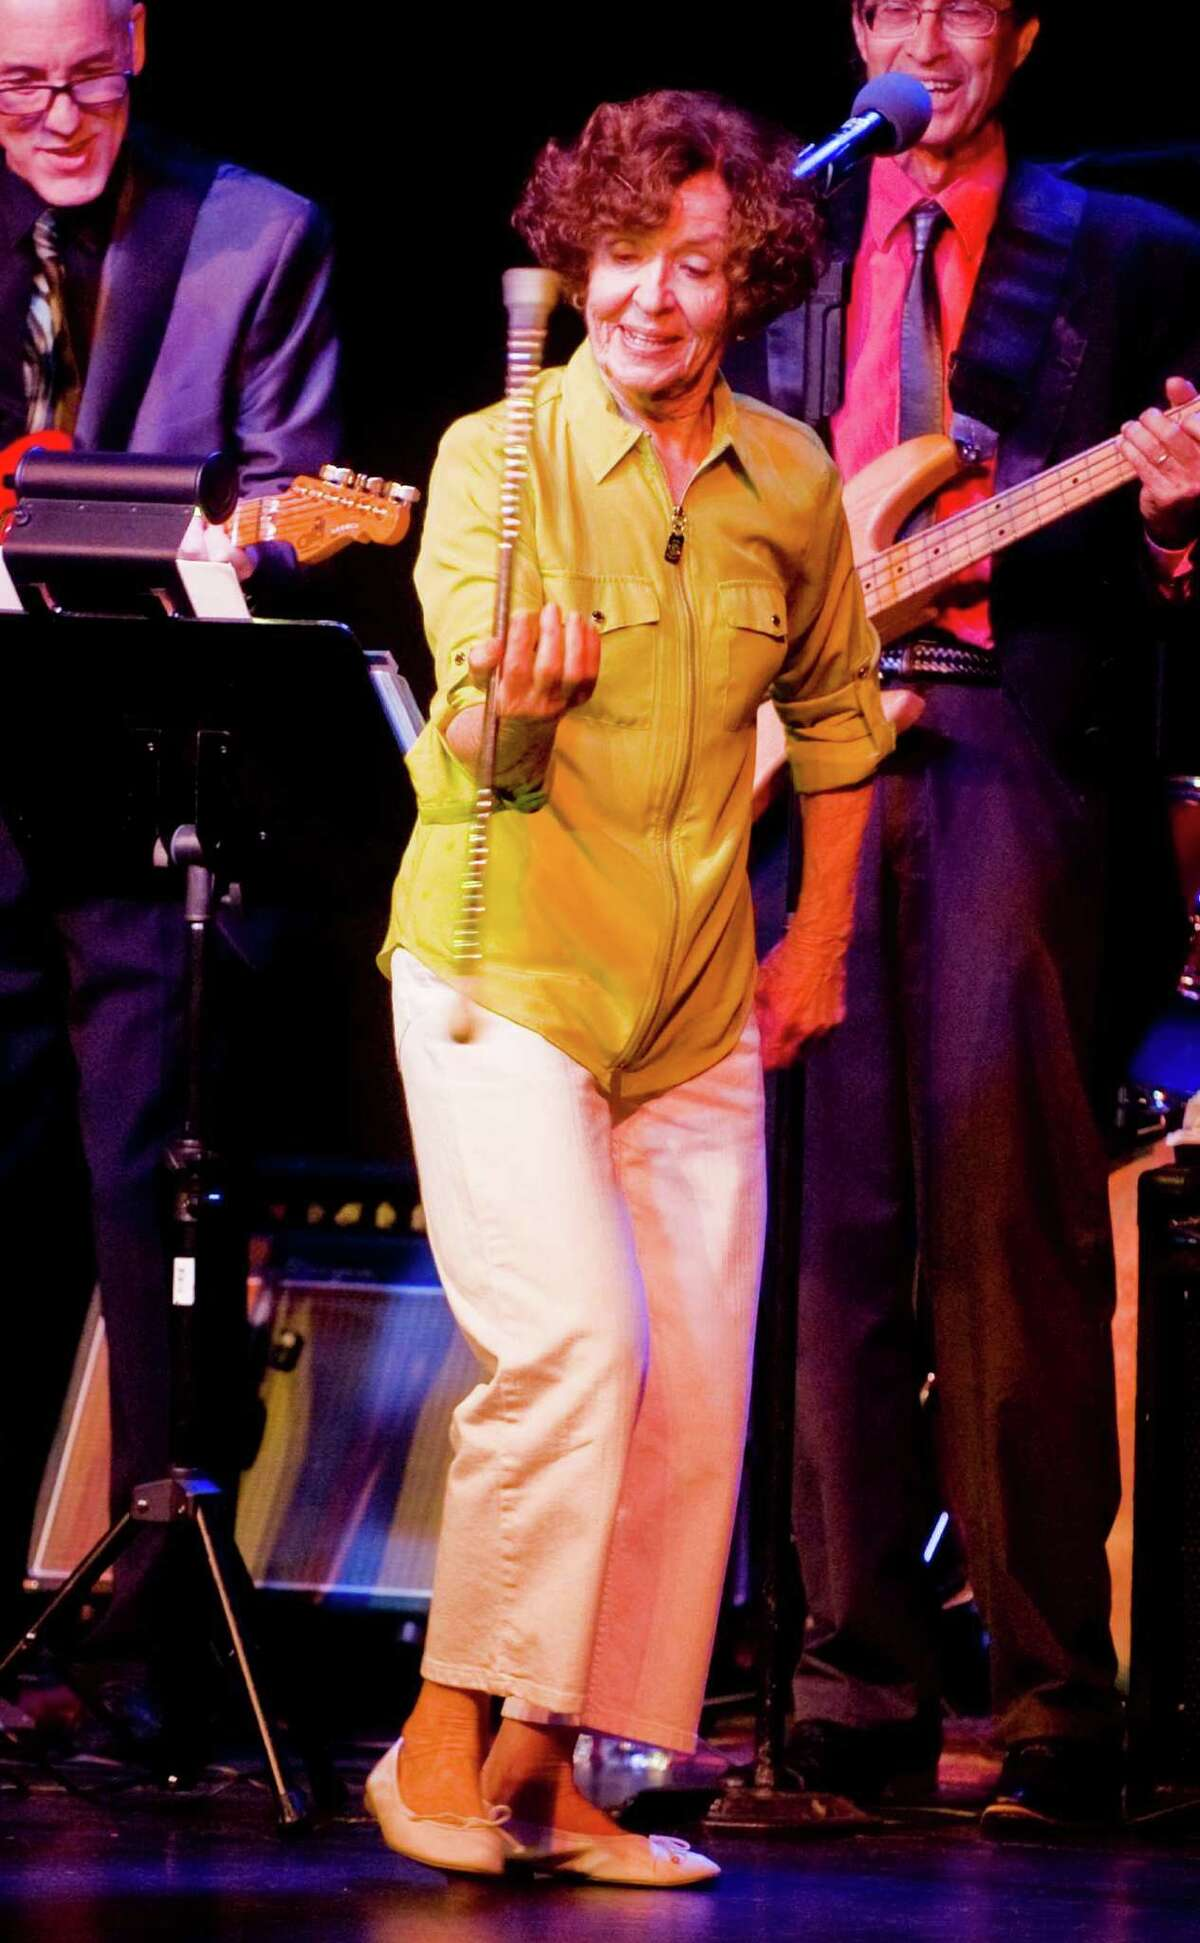 World champion baton twirler, 82 year old Bobbie Thurman Christos performing in The Great Danbury Fair Revue at The Palace on Main Street in Danbury. Bobbie also twriled her baton at the Danbury Fair in the 1940's. Sunday, Oct. 5, 2014